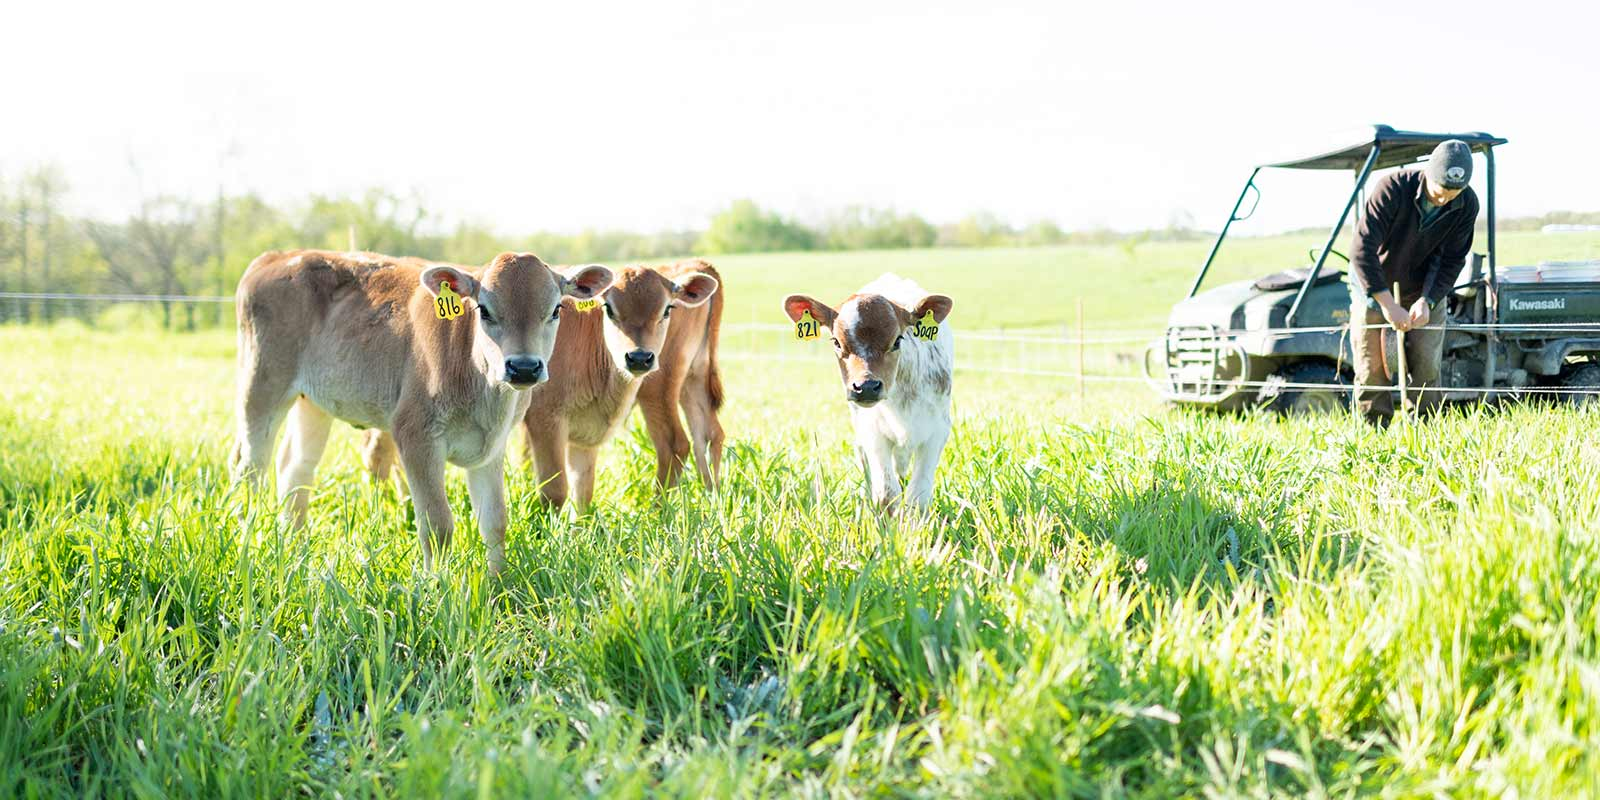 Three calves look directly at the camera while standing in tall grass. In the background, the farmer adjusts the fence.